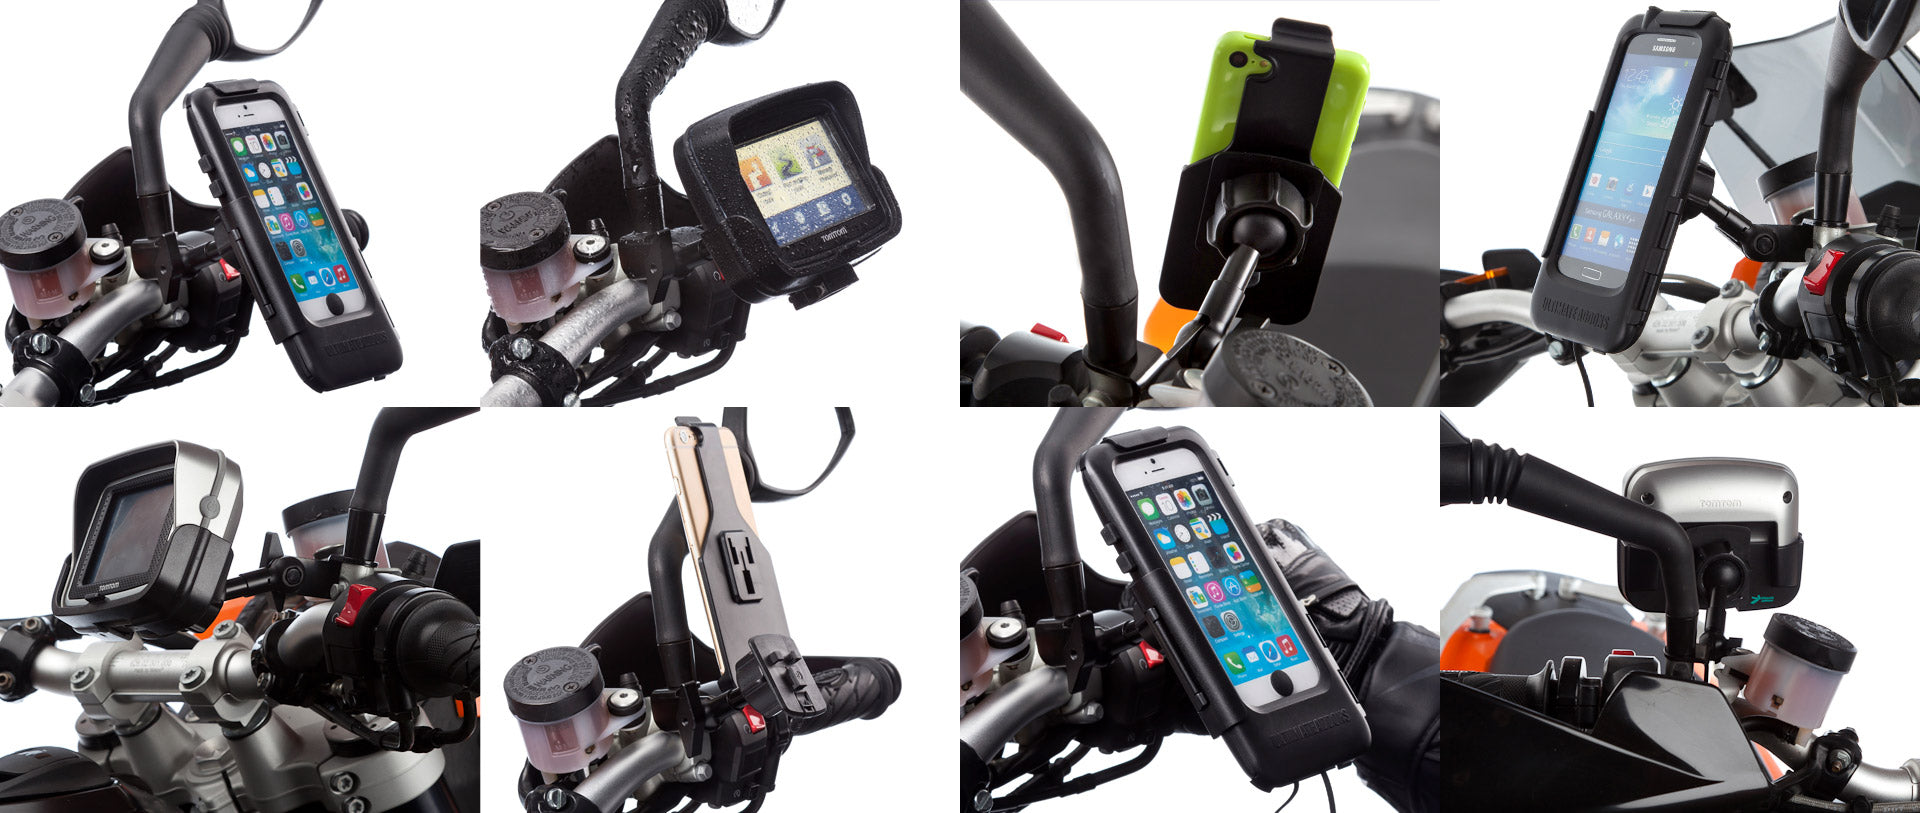 Motorcycle mirror v2 mount by Ultimateaddons